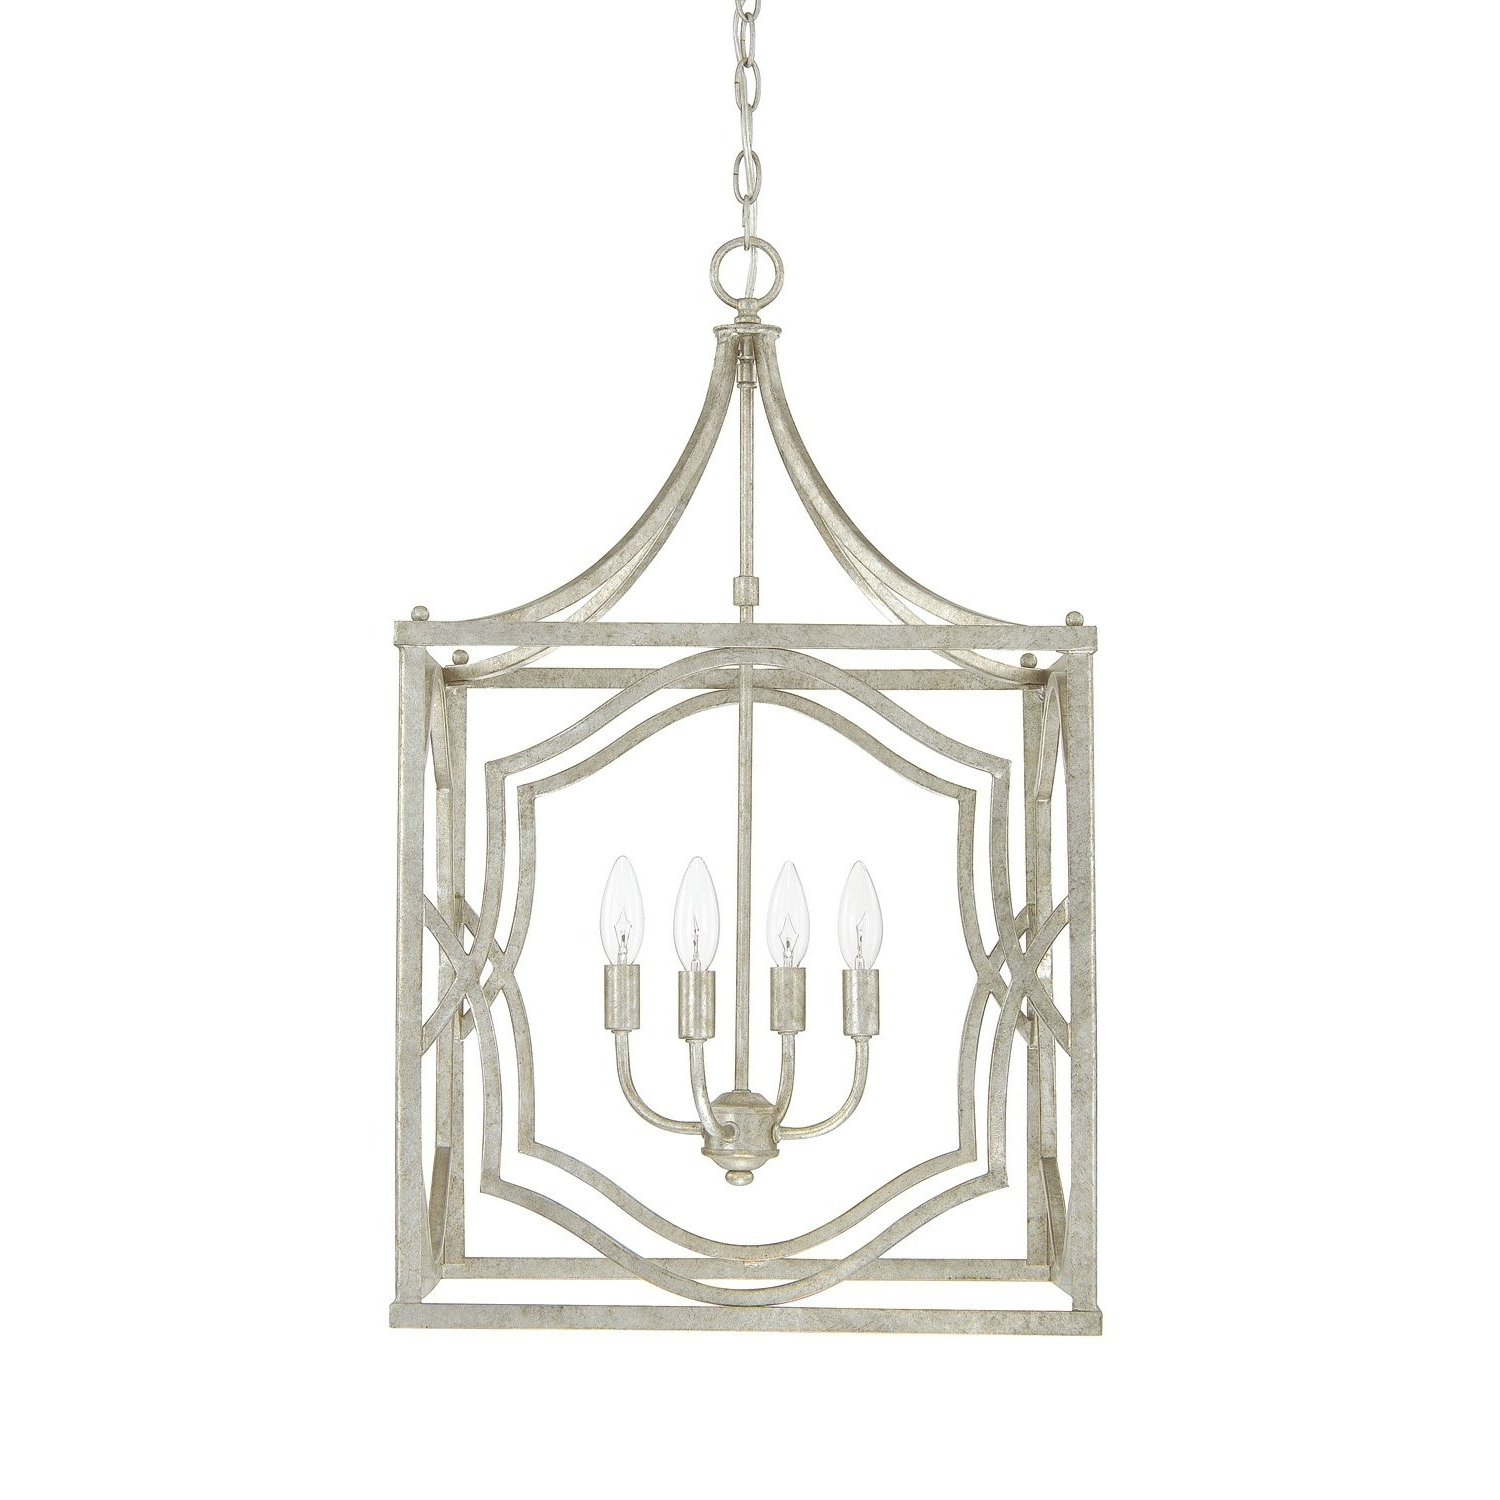 Oriana 4 Light Single Geometric Chandeliers Inside Most Current Blakely 4 Light Antique Silver Foyer Fixture – Antique (View 14 of 20)